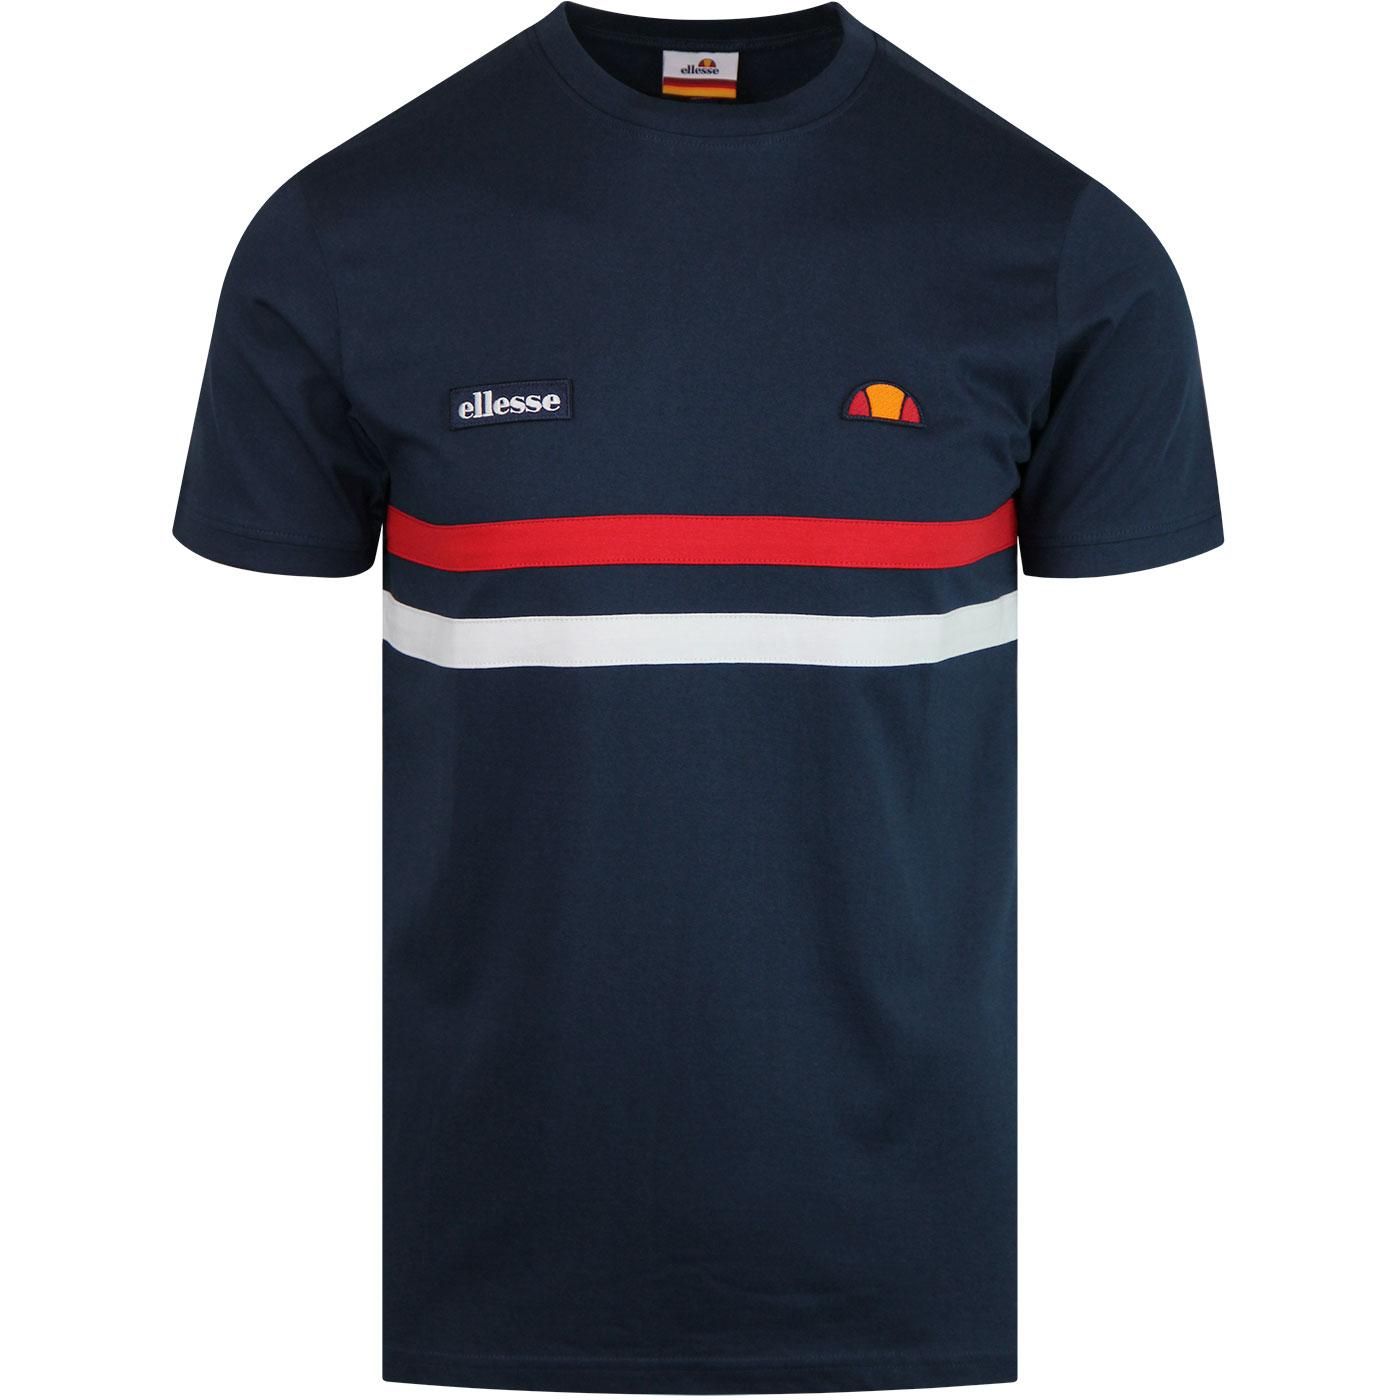 Banlo ELLESSE Mens Retro 70s Chest Stripe Tee (N)